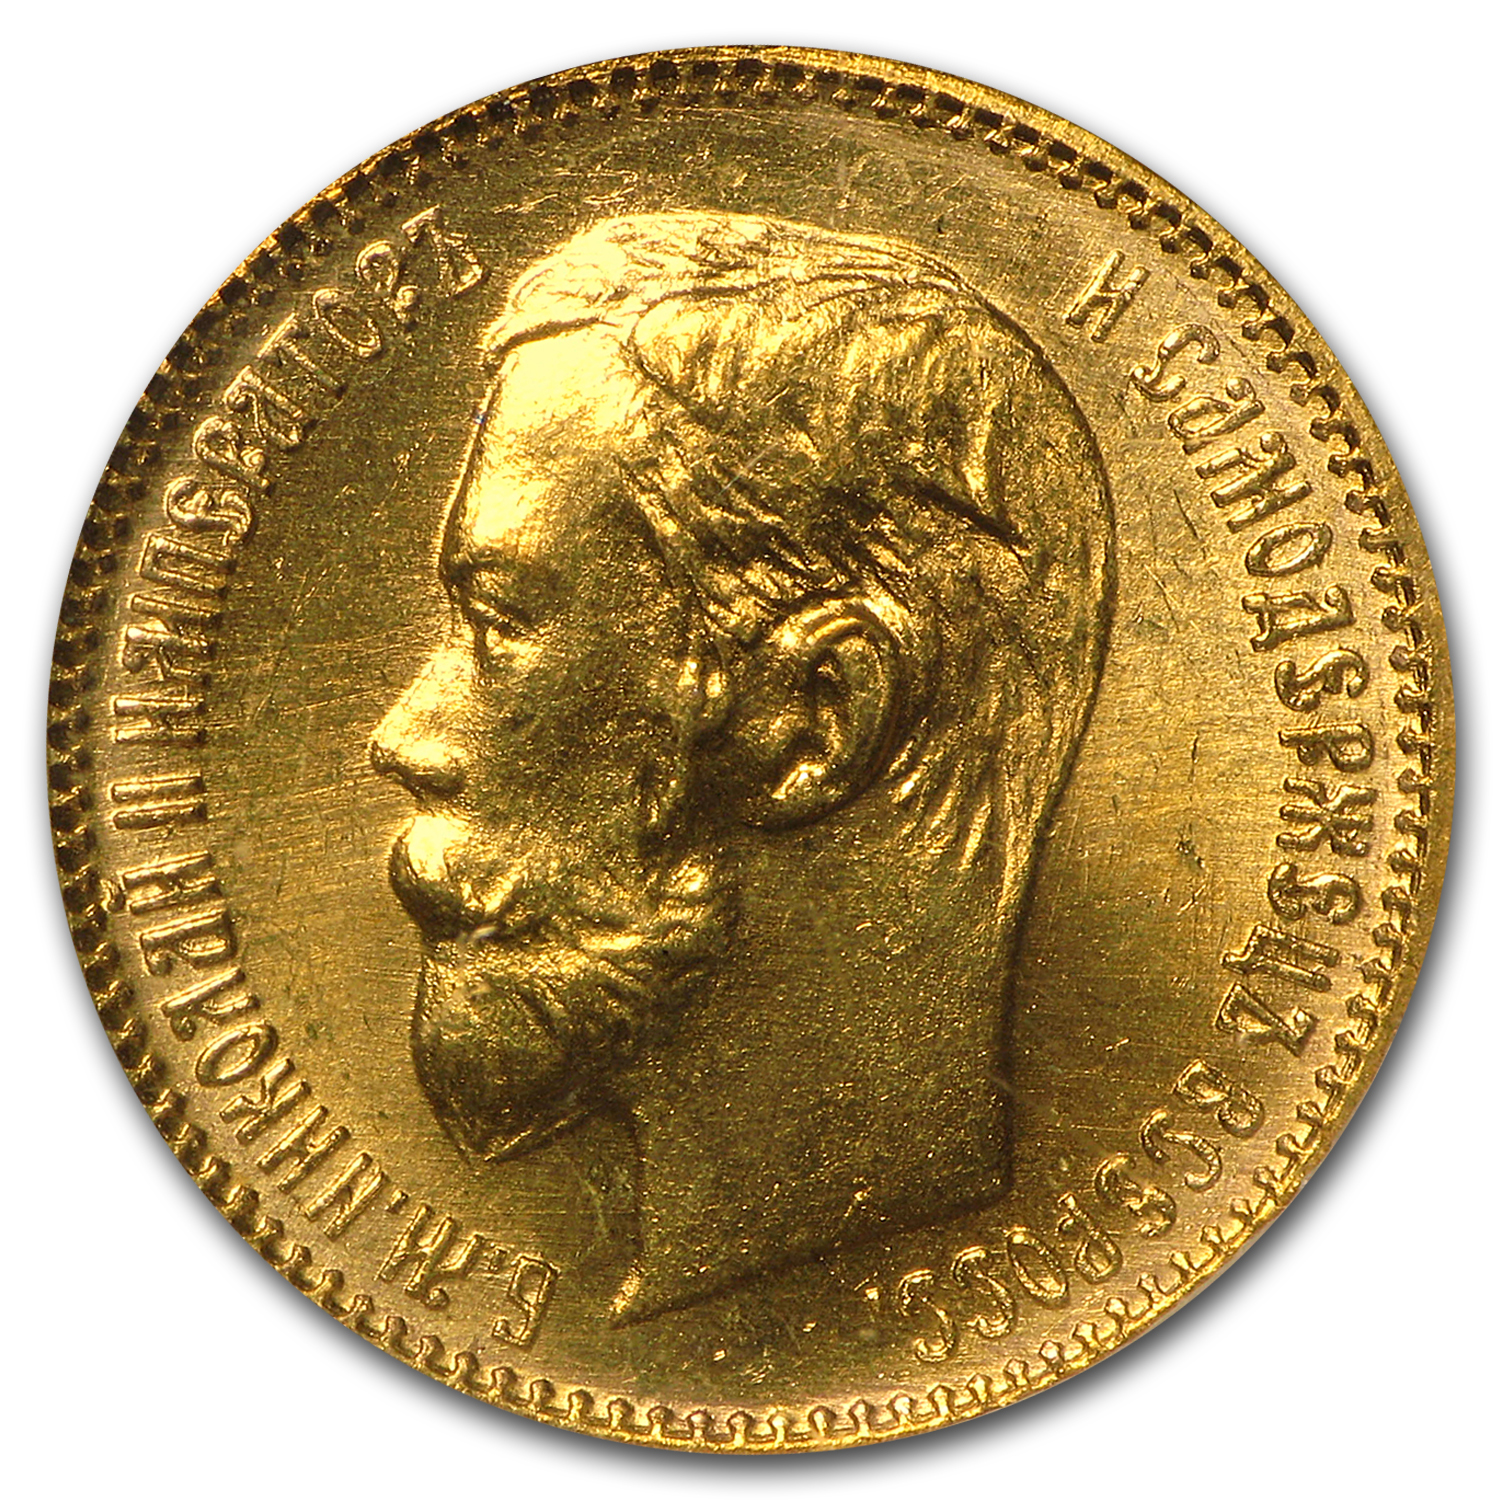 Russia 1902 Gold 5 Roubles - MS-66 NGC